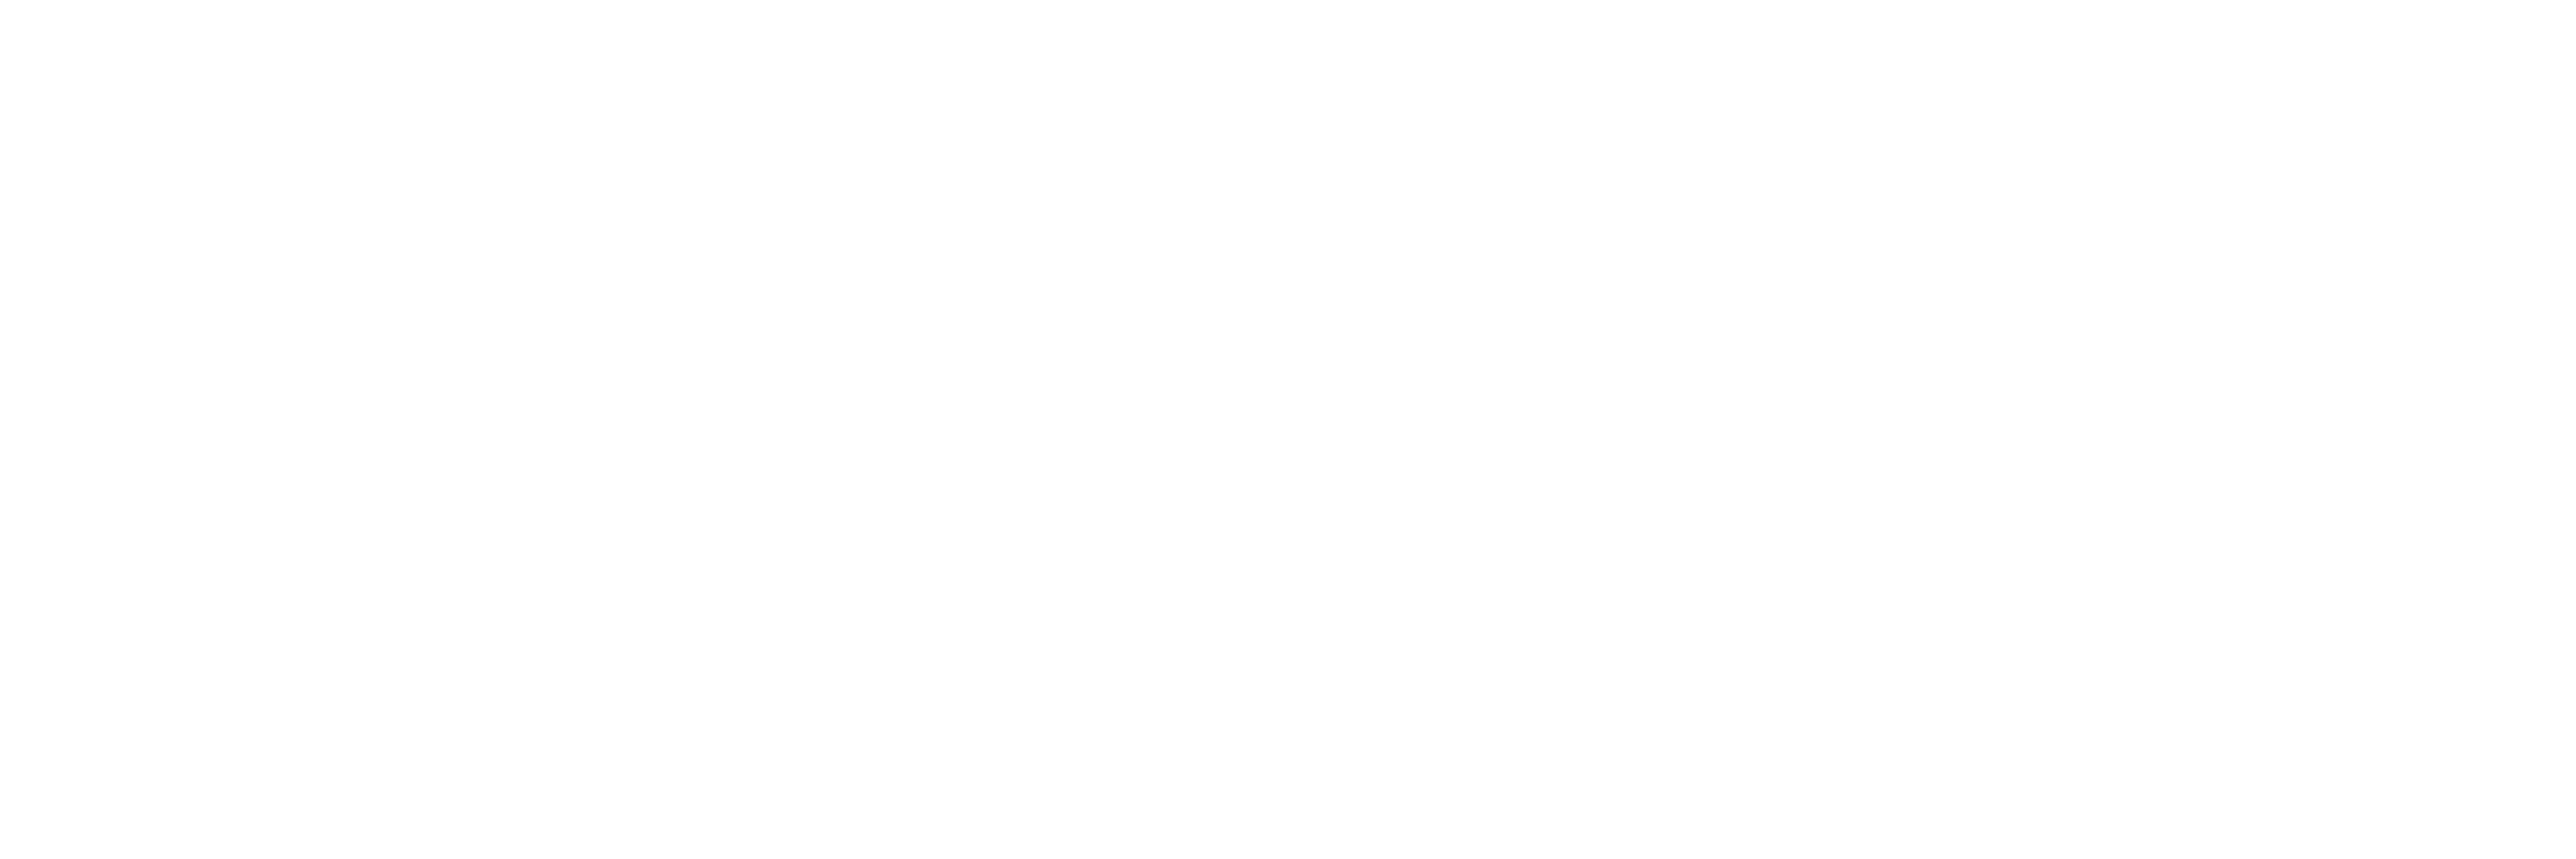 Vine & Branch Photography